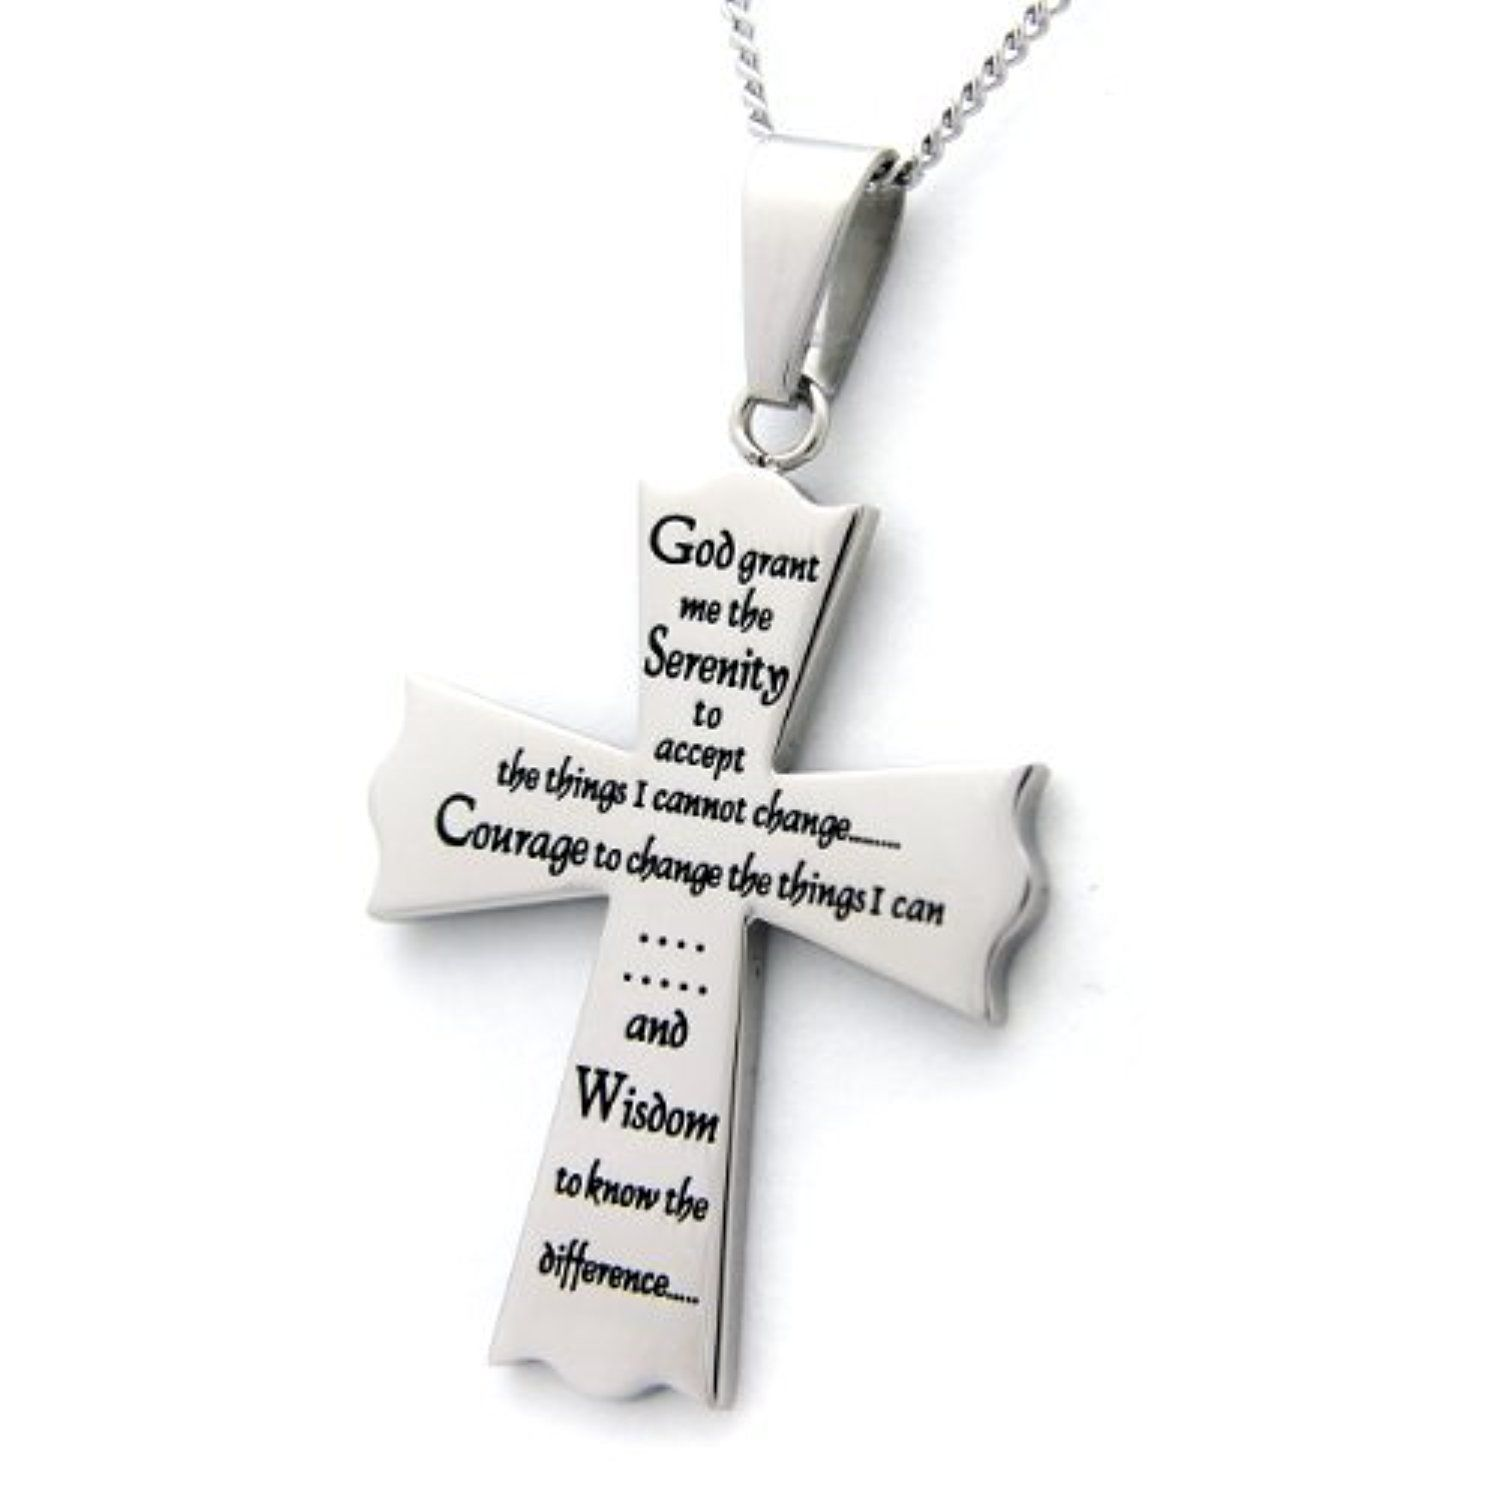 bible gifts steel verse prayer serenity lords pendant stainless pendants christian necklace mens womens women dp laoyou jewelry men necklaces for